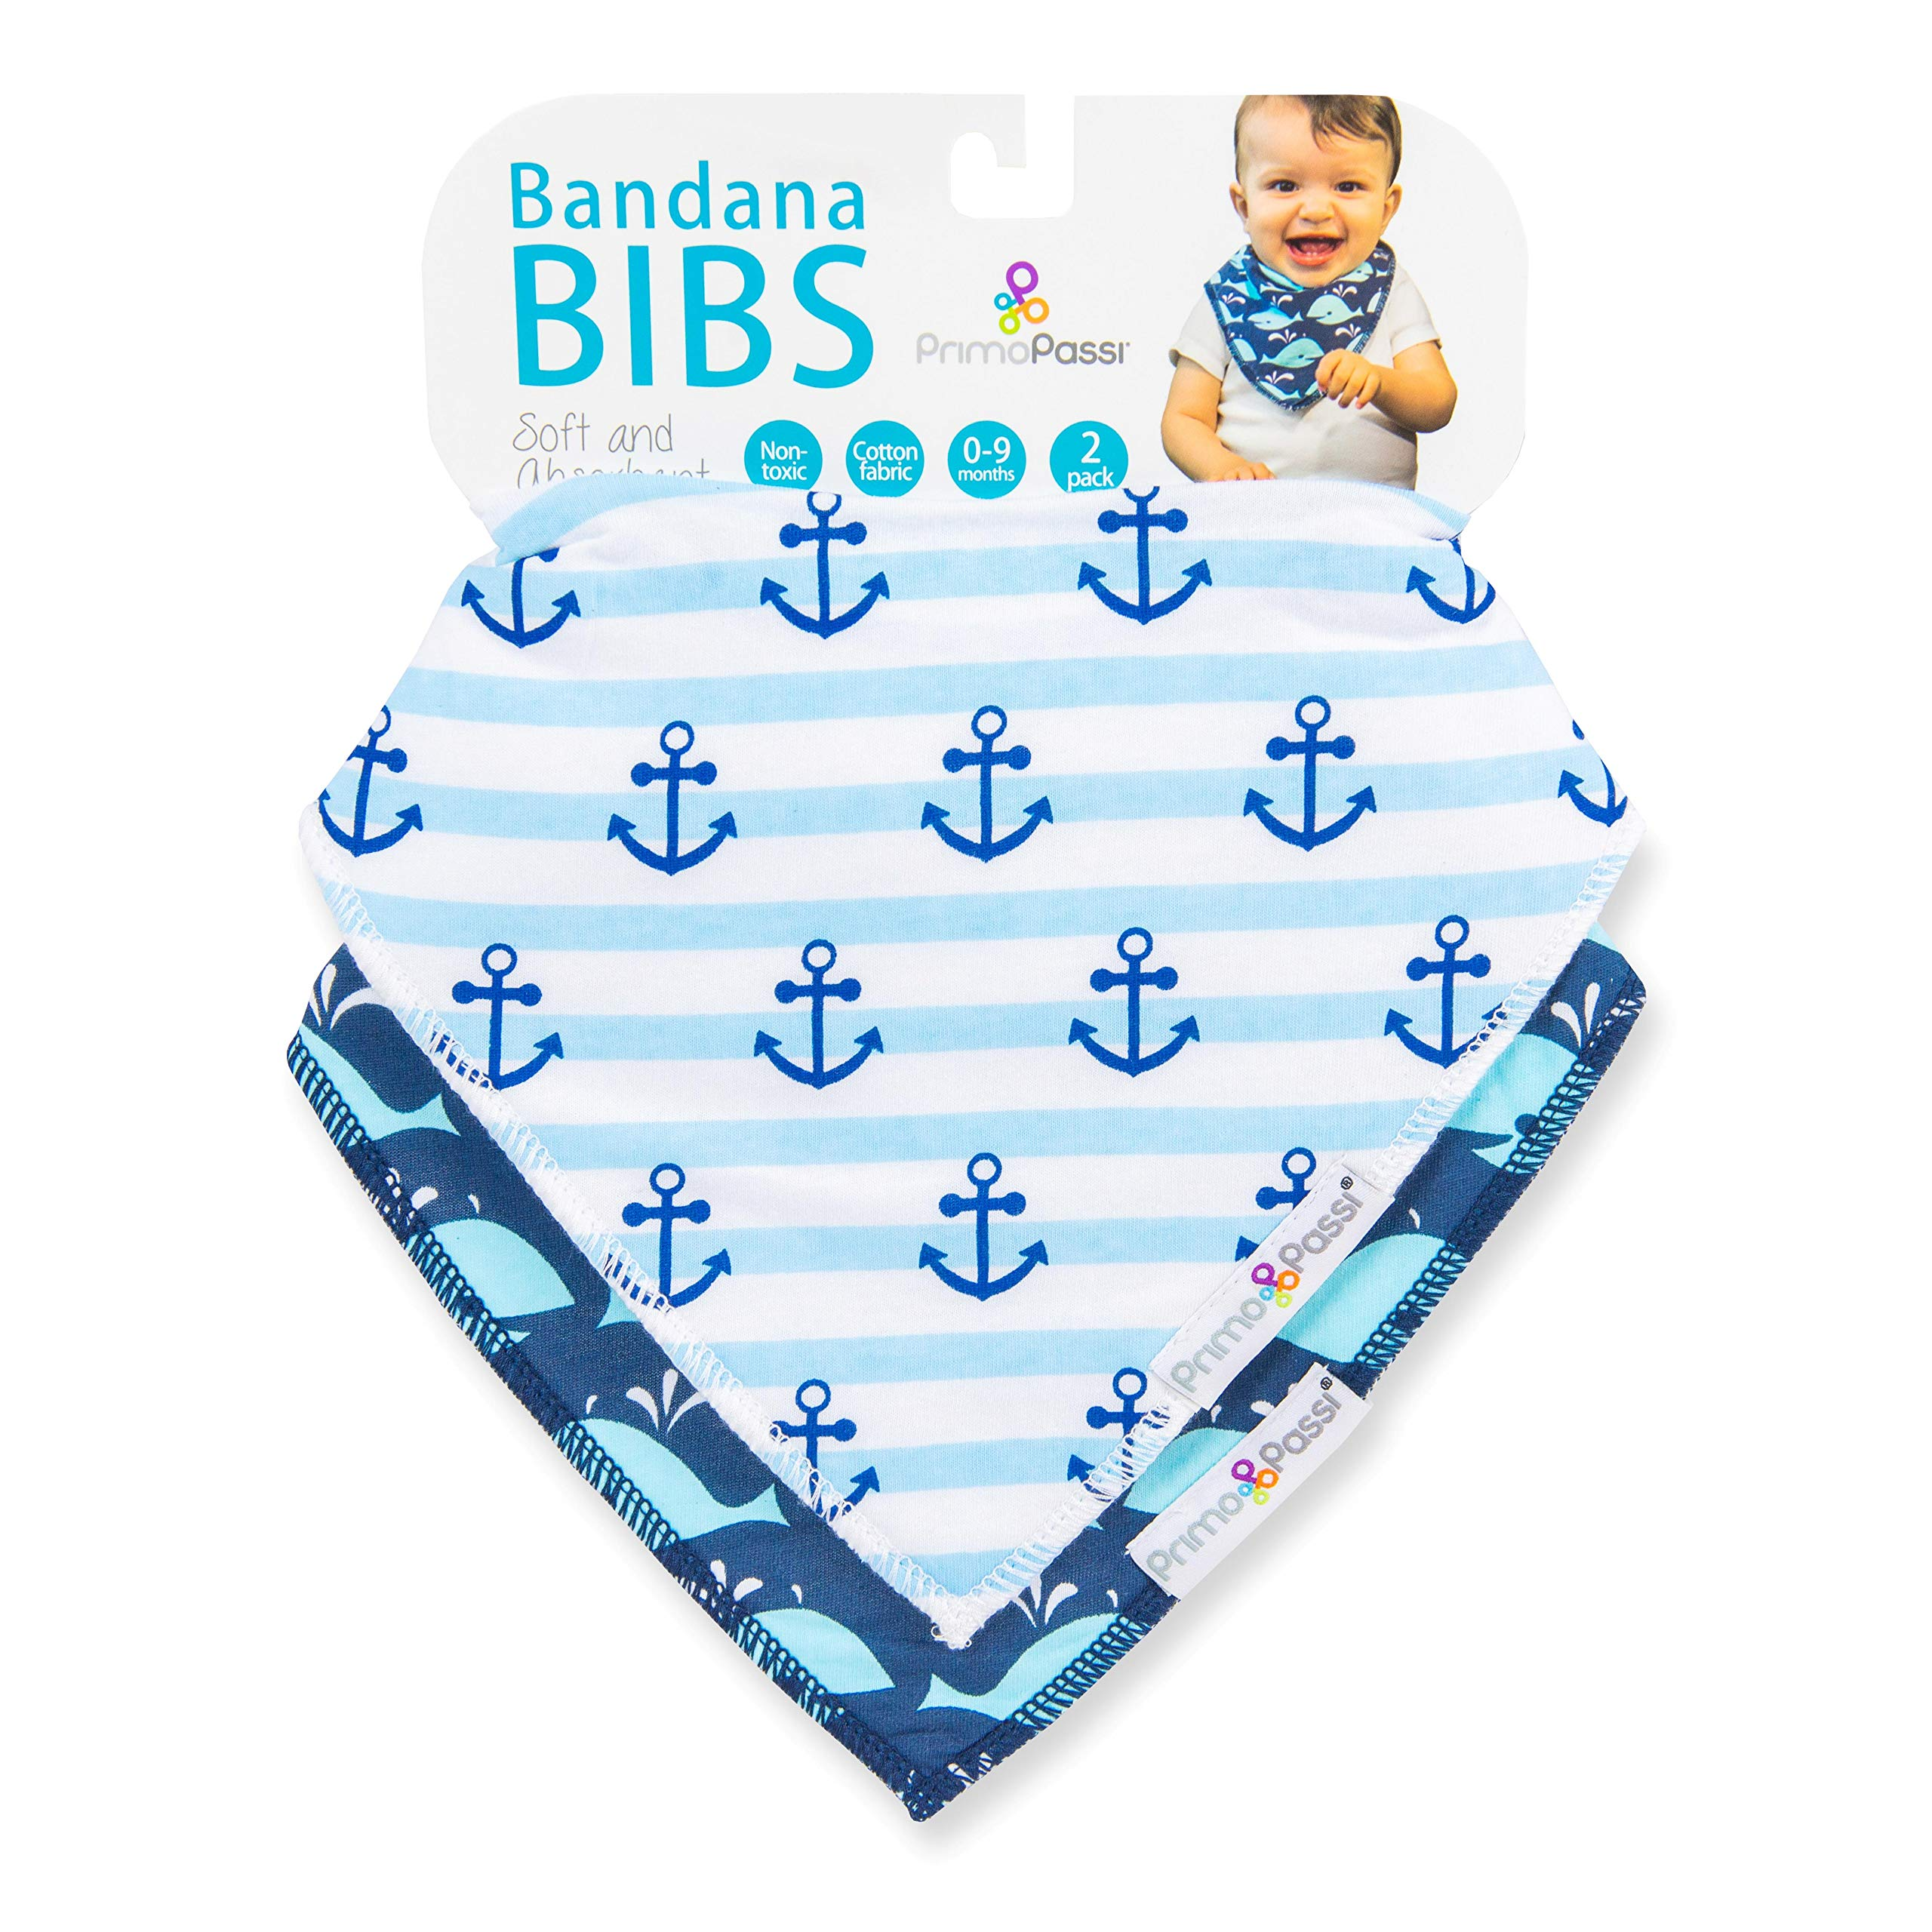 Primo Passi 2 Pack Baby Bandana Drool Bibs by Primo Passi I Best Teething and Drooling Absorbent Cotton I Nickle Free adjustable Snap I Baby Boys & Girls (Whale)